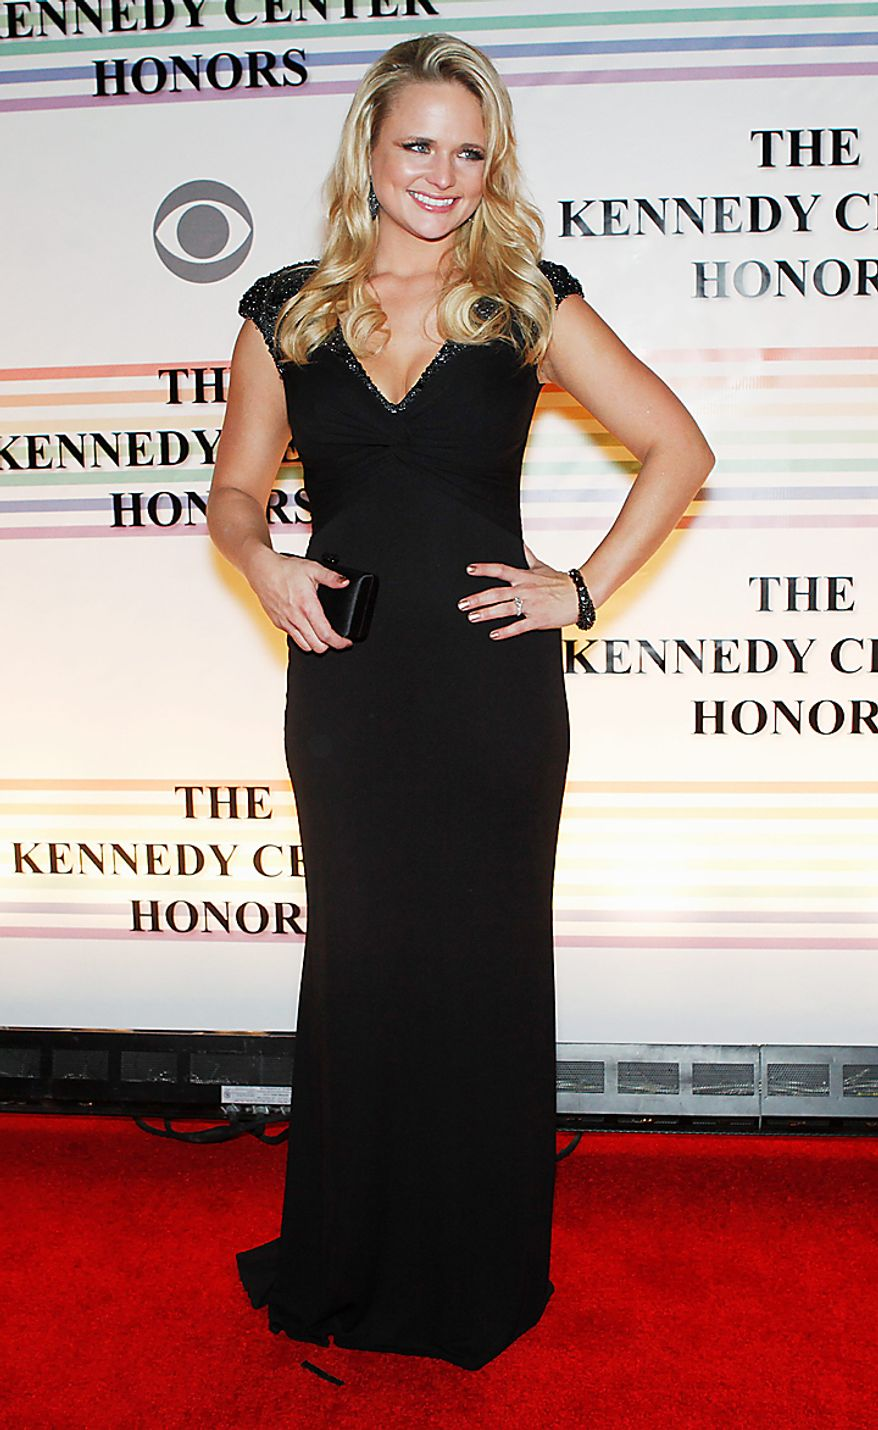 Miranda Lambert walks the red carpet at the Kennedy Center Honors in Washington on Sunday, Dec. 5, 2010. The 2010 honorees were Merle Haggard, Jerry Herman, Bill T. Jones, Paul McCartney and Oprah Winfrey. (AP Photo/Jacquelyn Martin)